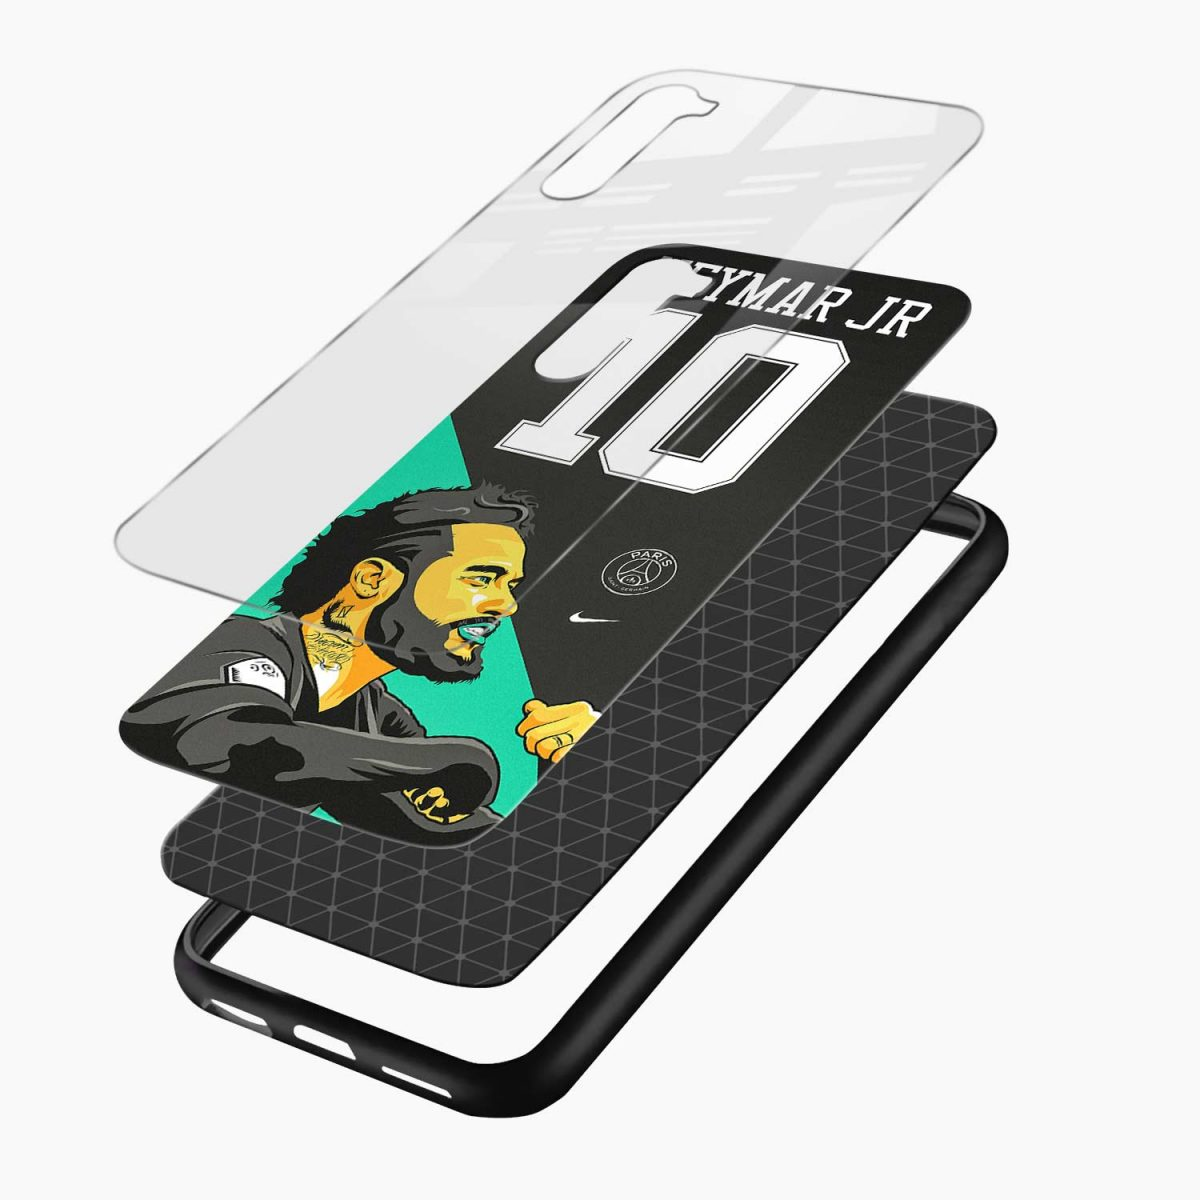 neymar jr 10 layers view oneplus nord back cover